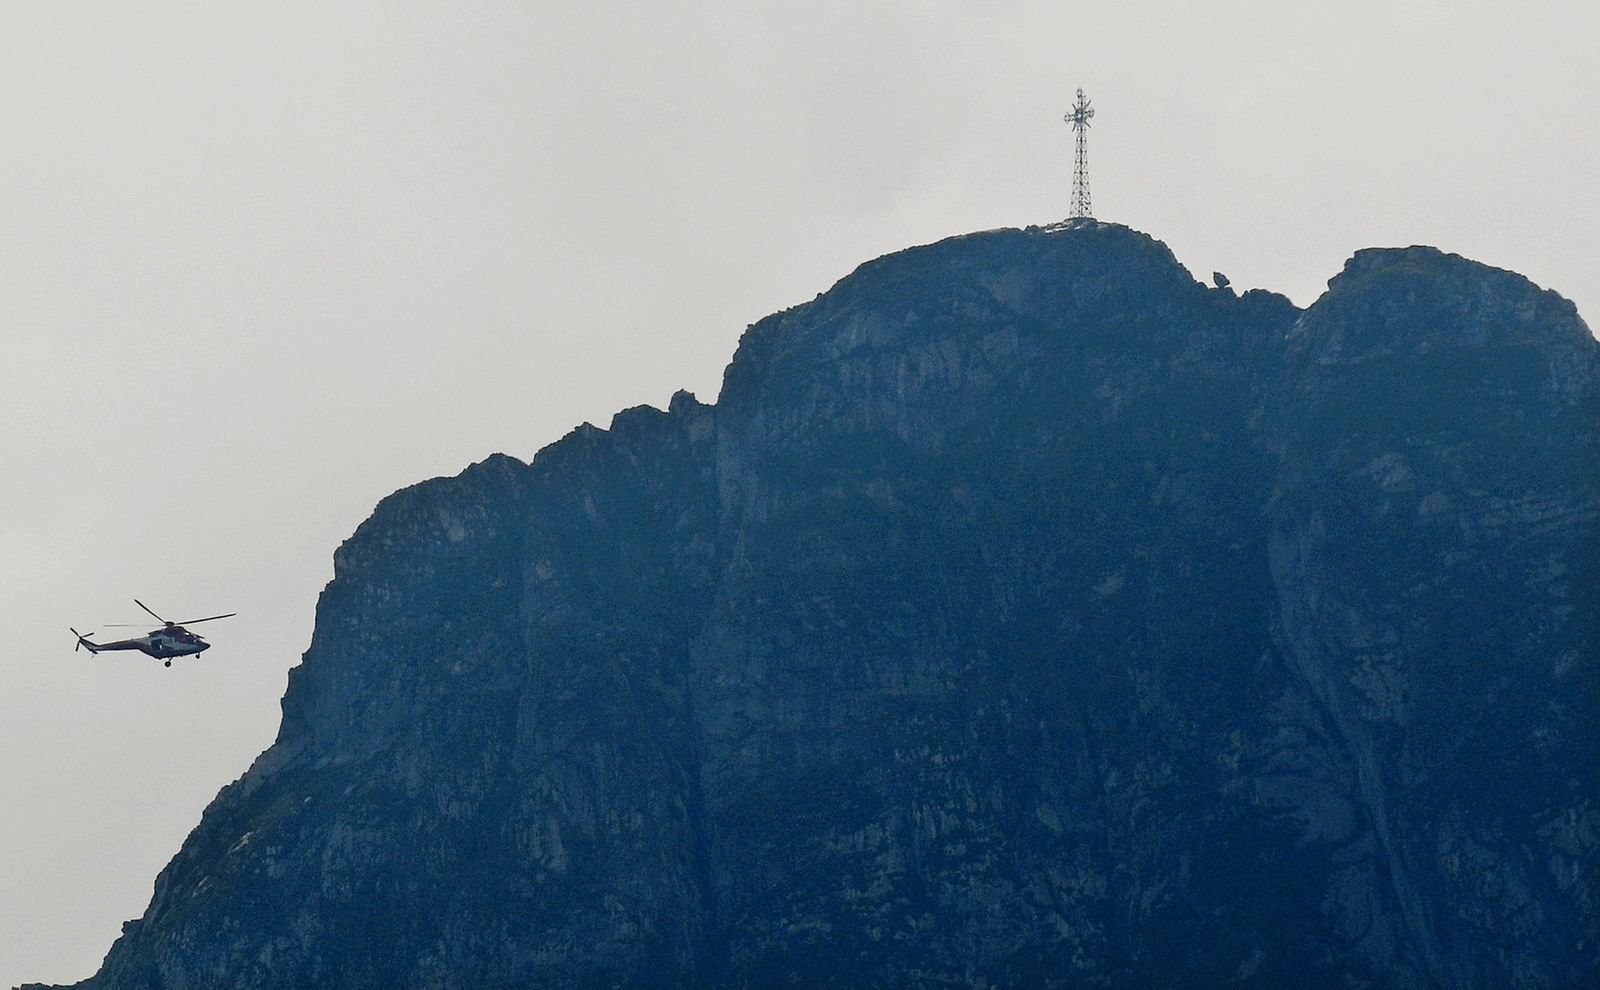 Rescuers in a helicopter checking the slopes of the Giewont peak for missing persons and anyone who might need help in the Tatra Mountains in Poland, Friday, Aug. 23, 2019. (AP Photo/Bartlomiej Jurecki)